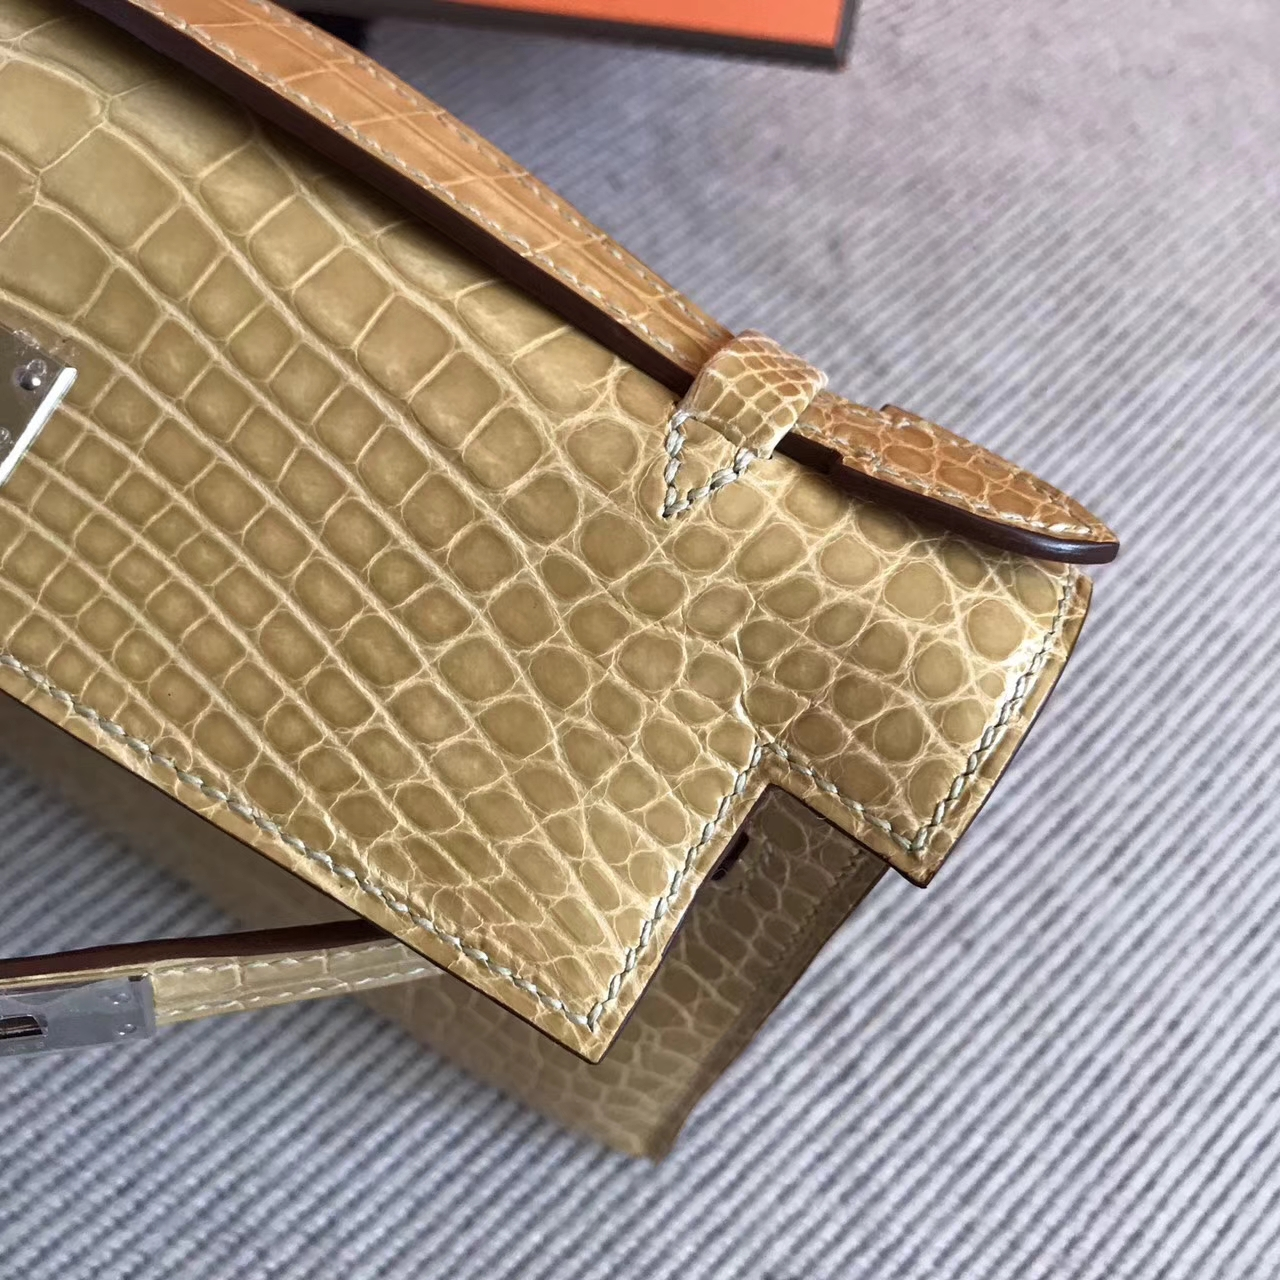 Hand Stitching Hermes Appricot Shiny Alligator Crocodile Minikelly Clutch Bag22cm